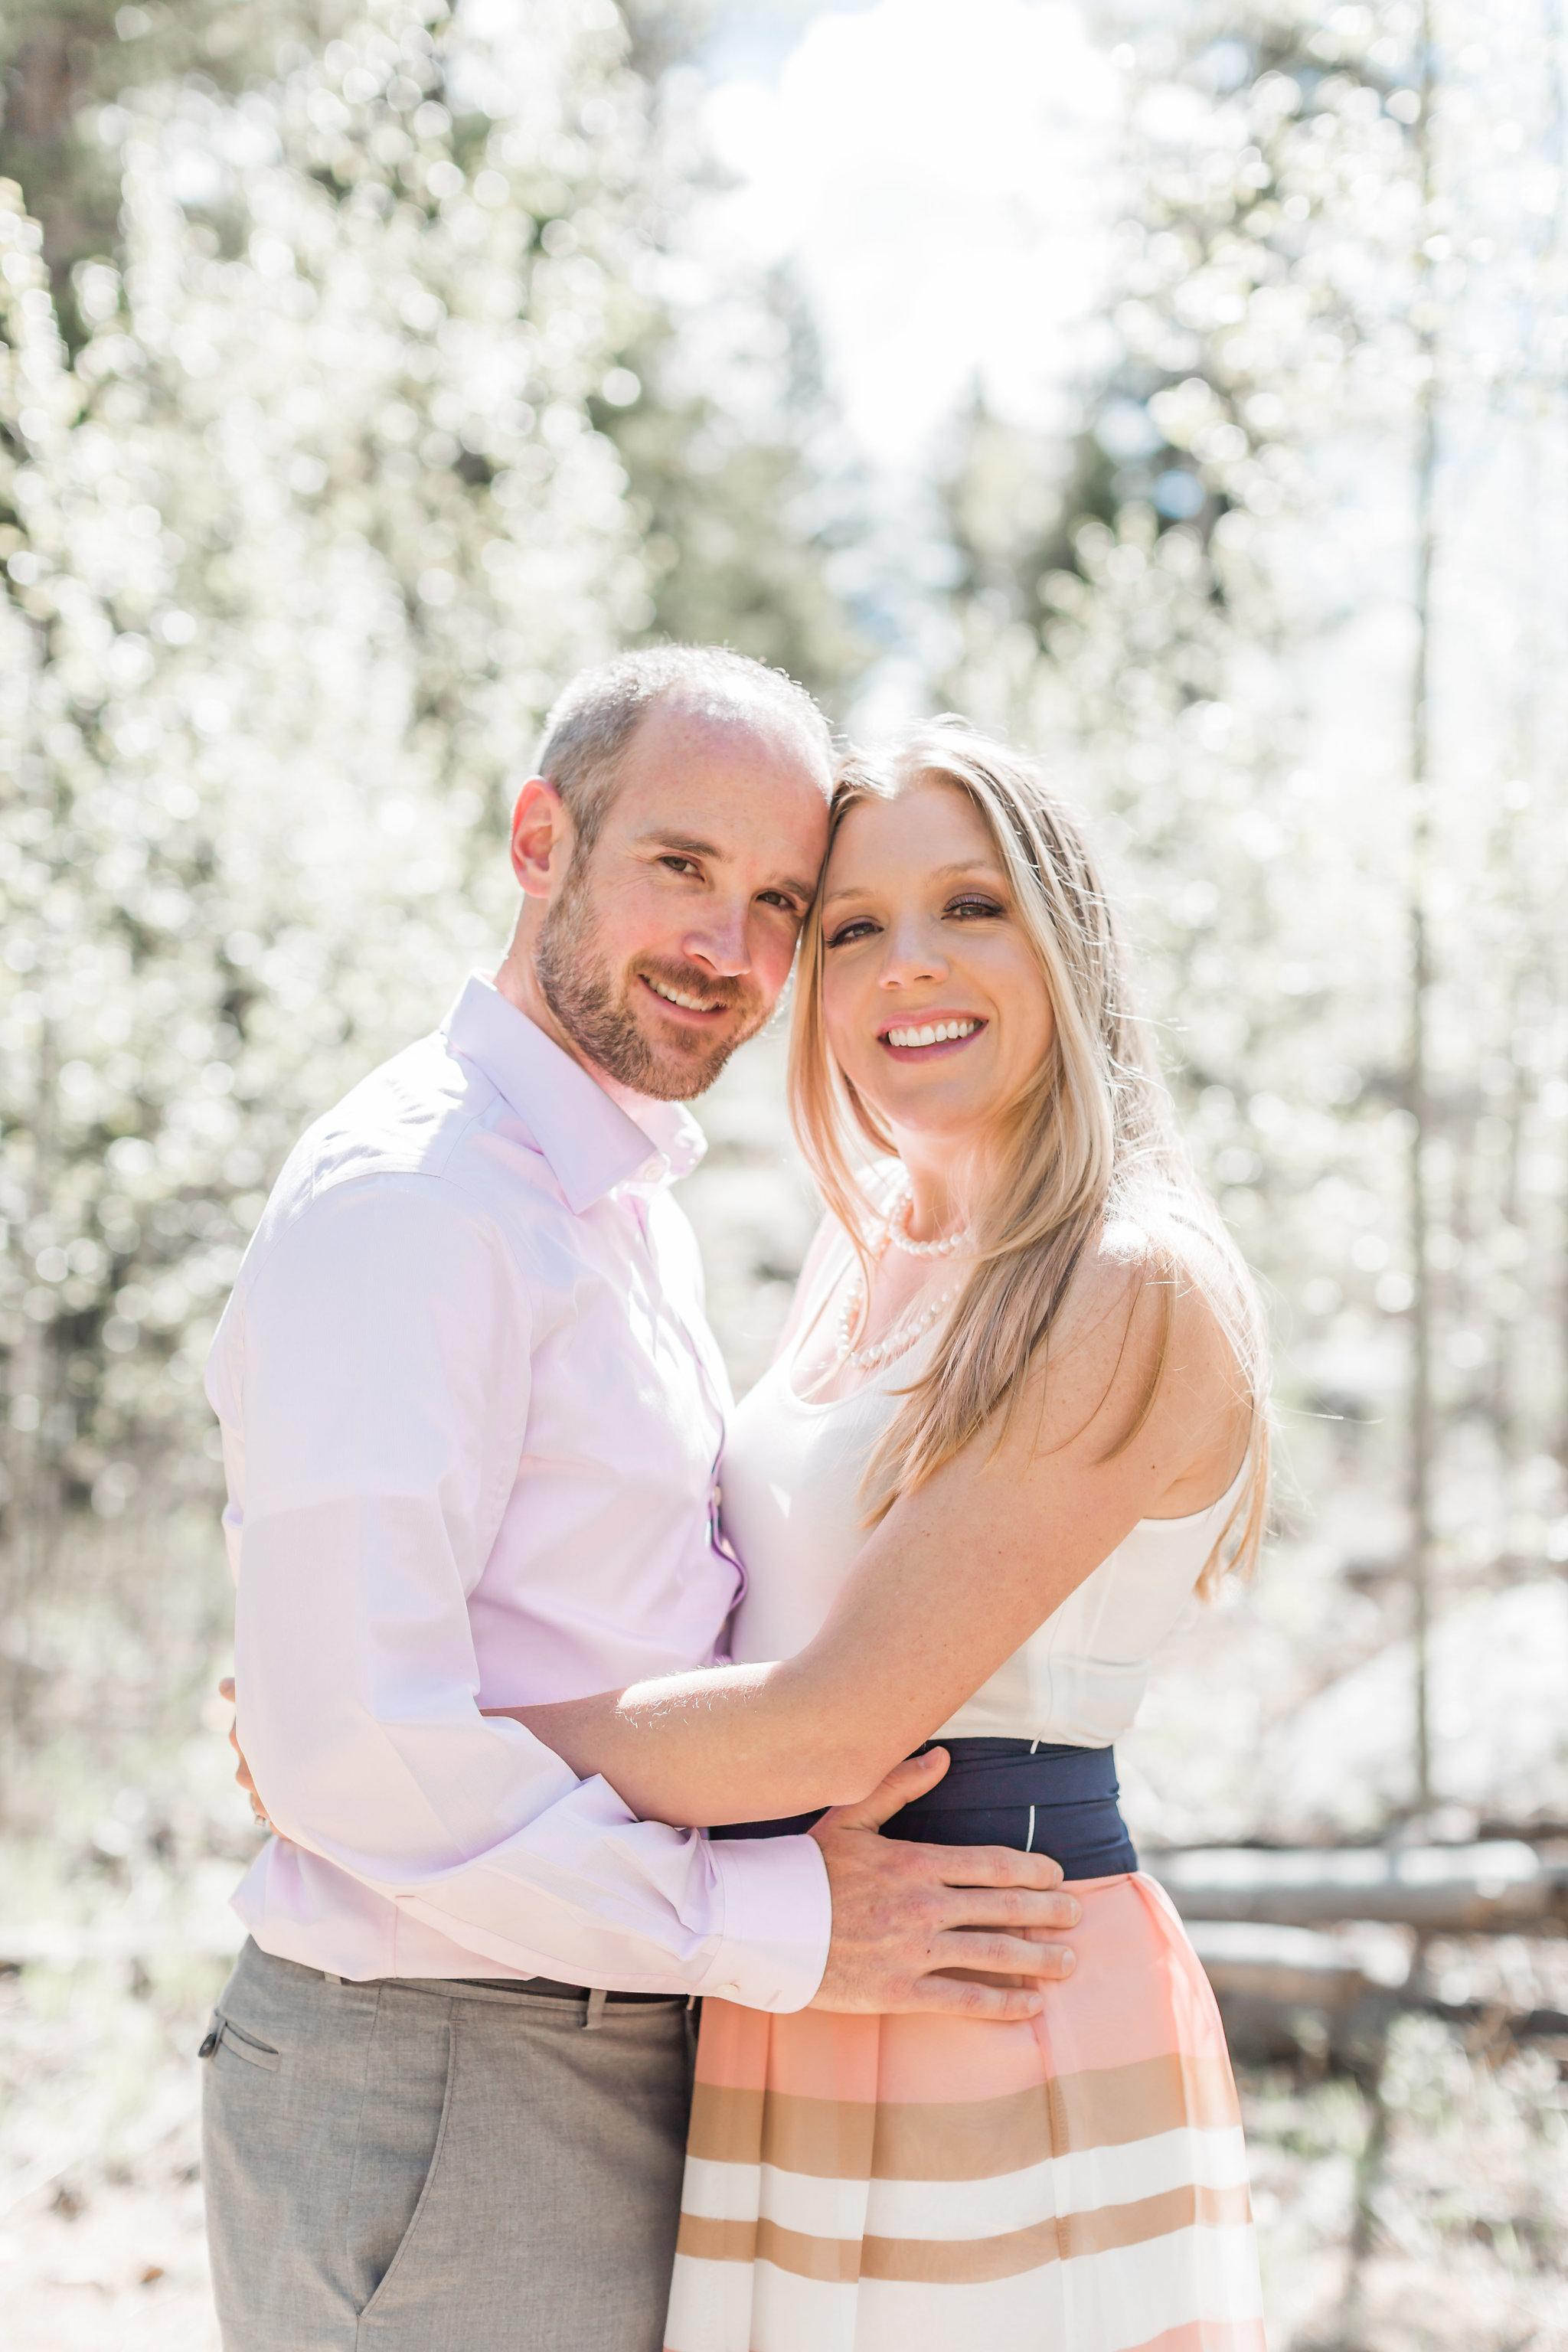 Golden Gate Canyon State Park Engagement Session | Golden Colorado | Andrea Rodway Photography